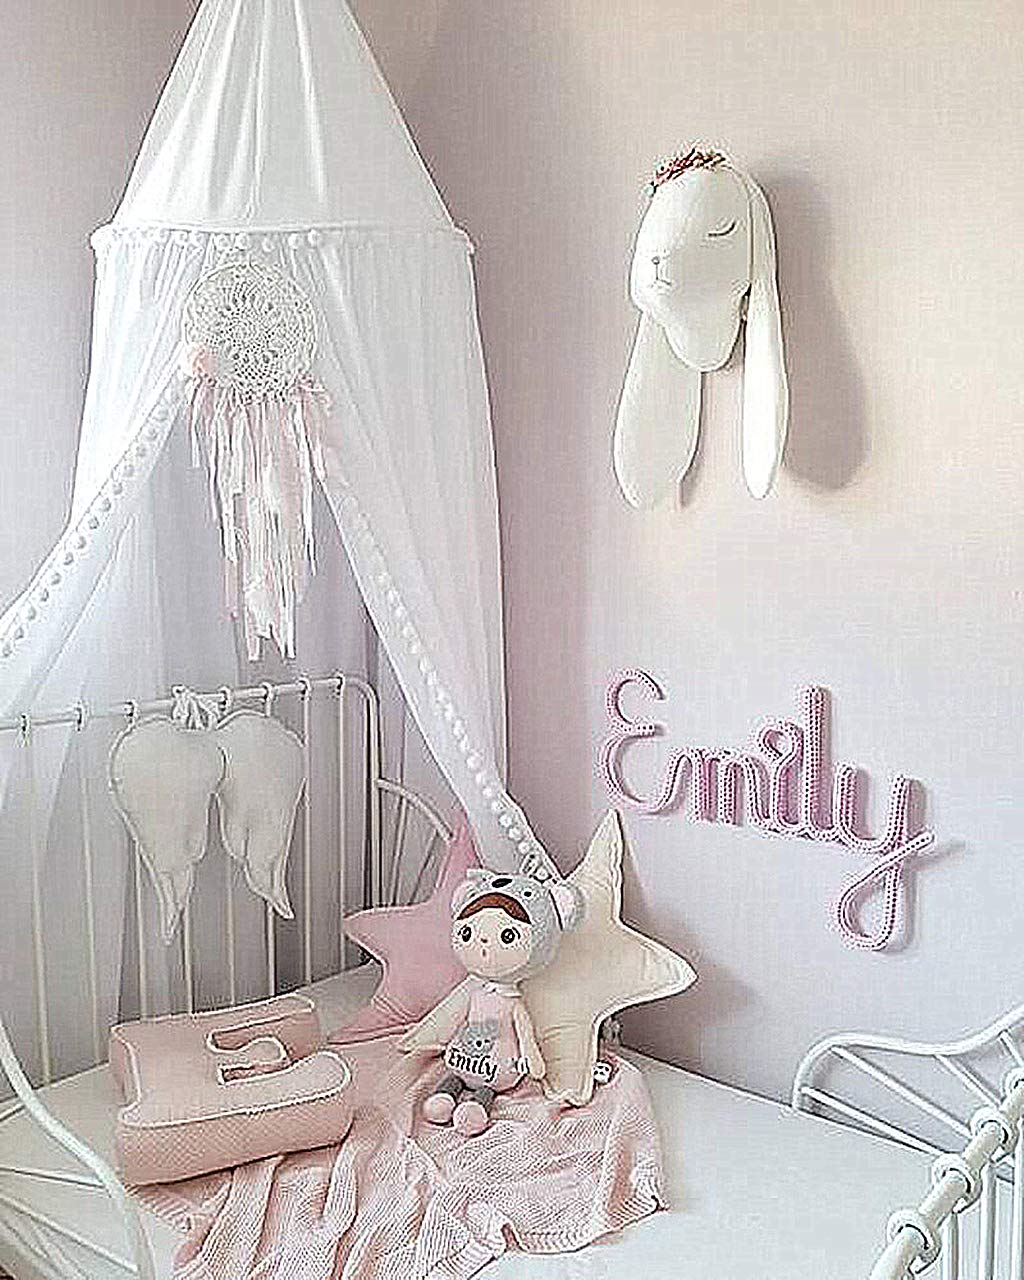 White Hanging Mosquito Net for Baby Crib Nook Castle Game Tent Nursery Play Room Decor Bed Canopy with Pom Pom for Kids Room